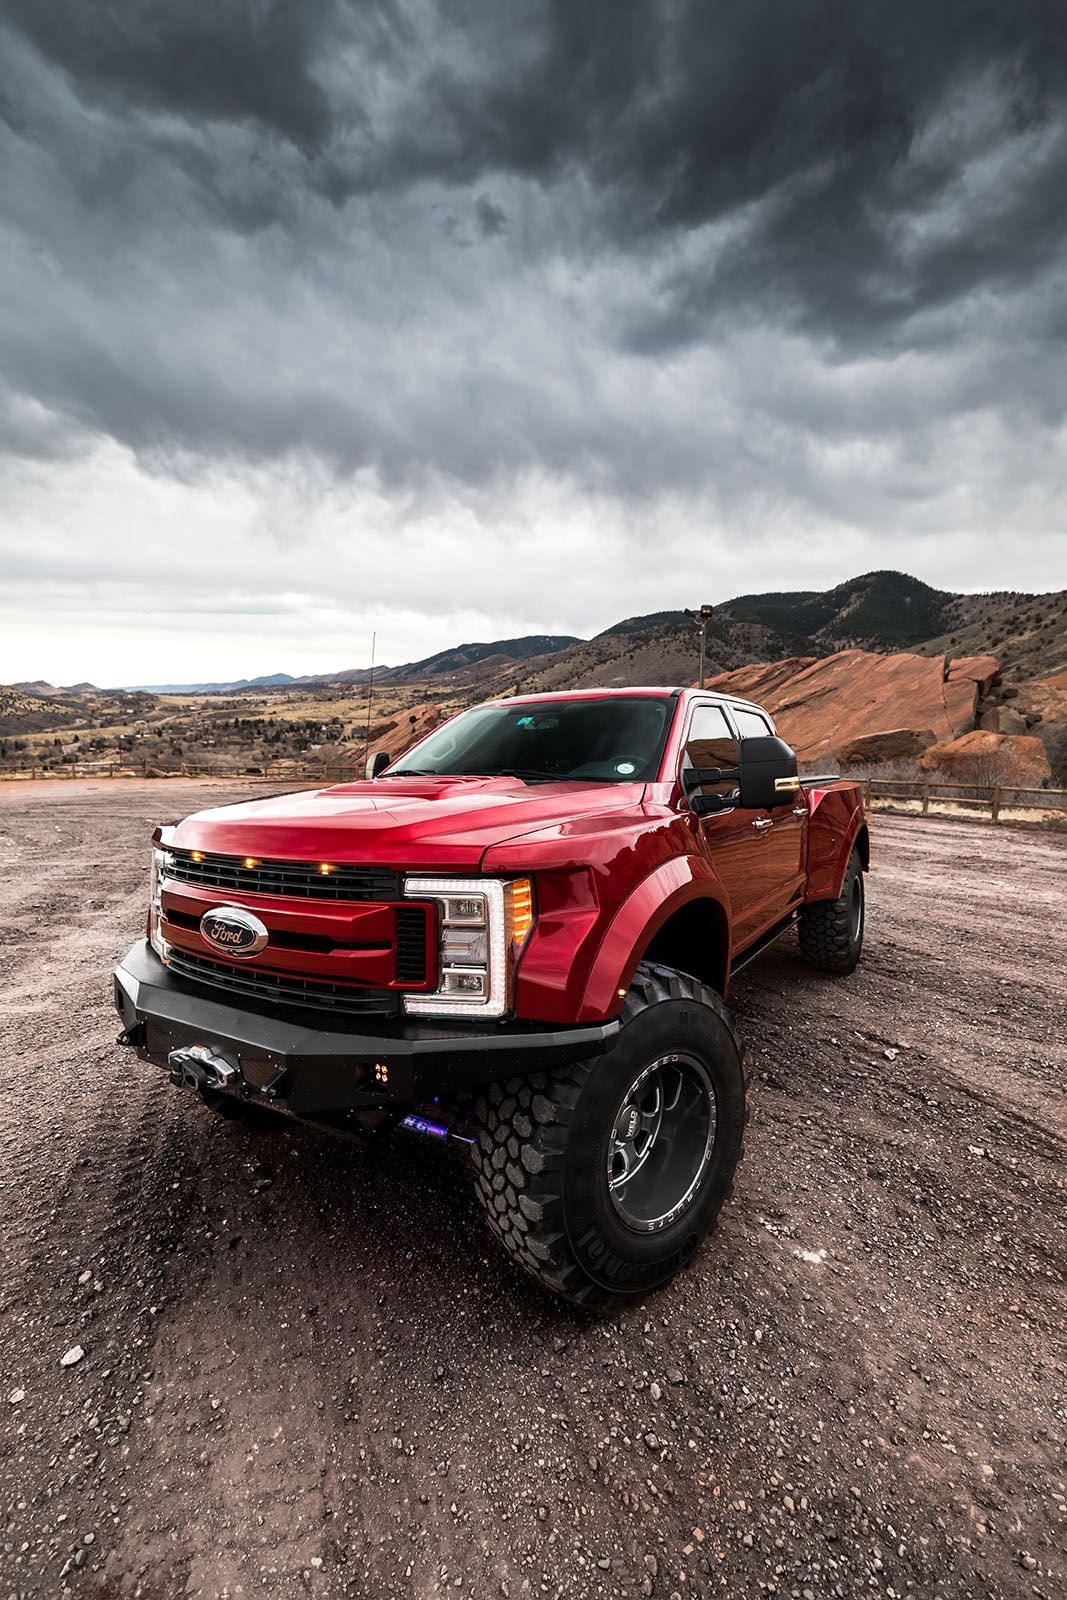 DEFCO BA350 Super Giant Ford Raptor Front